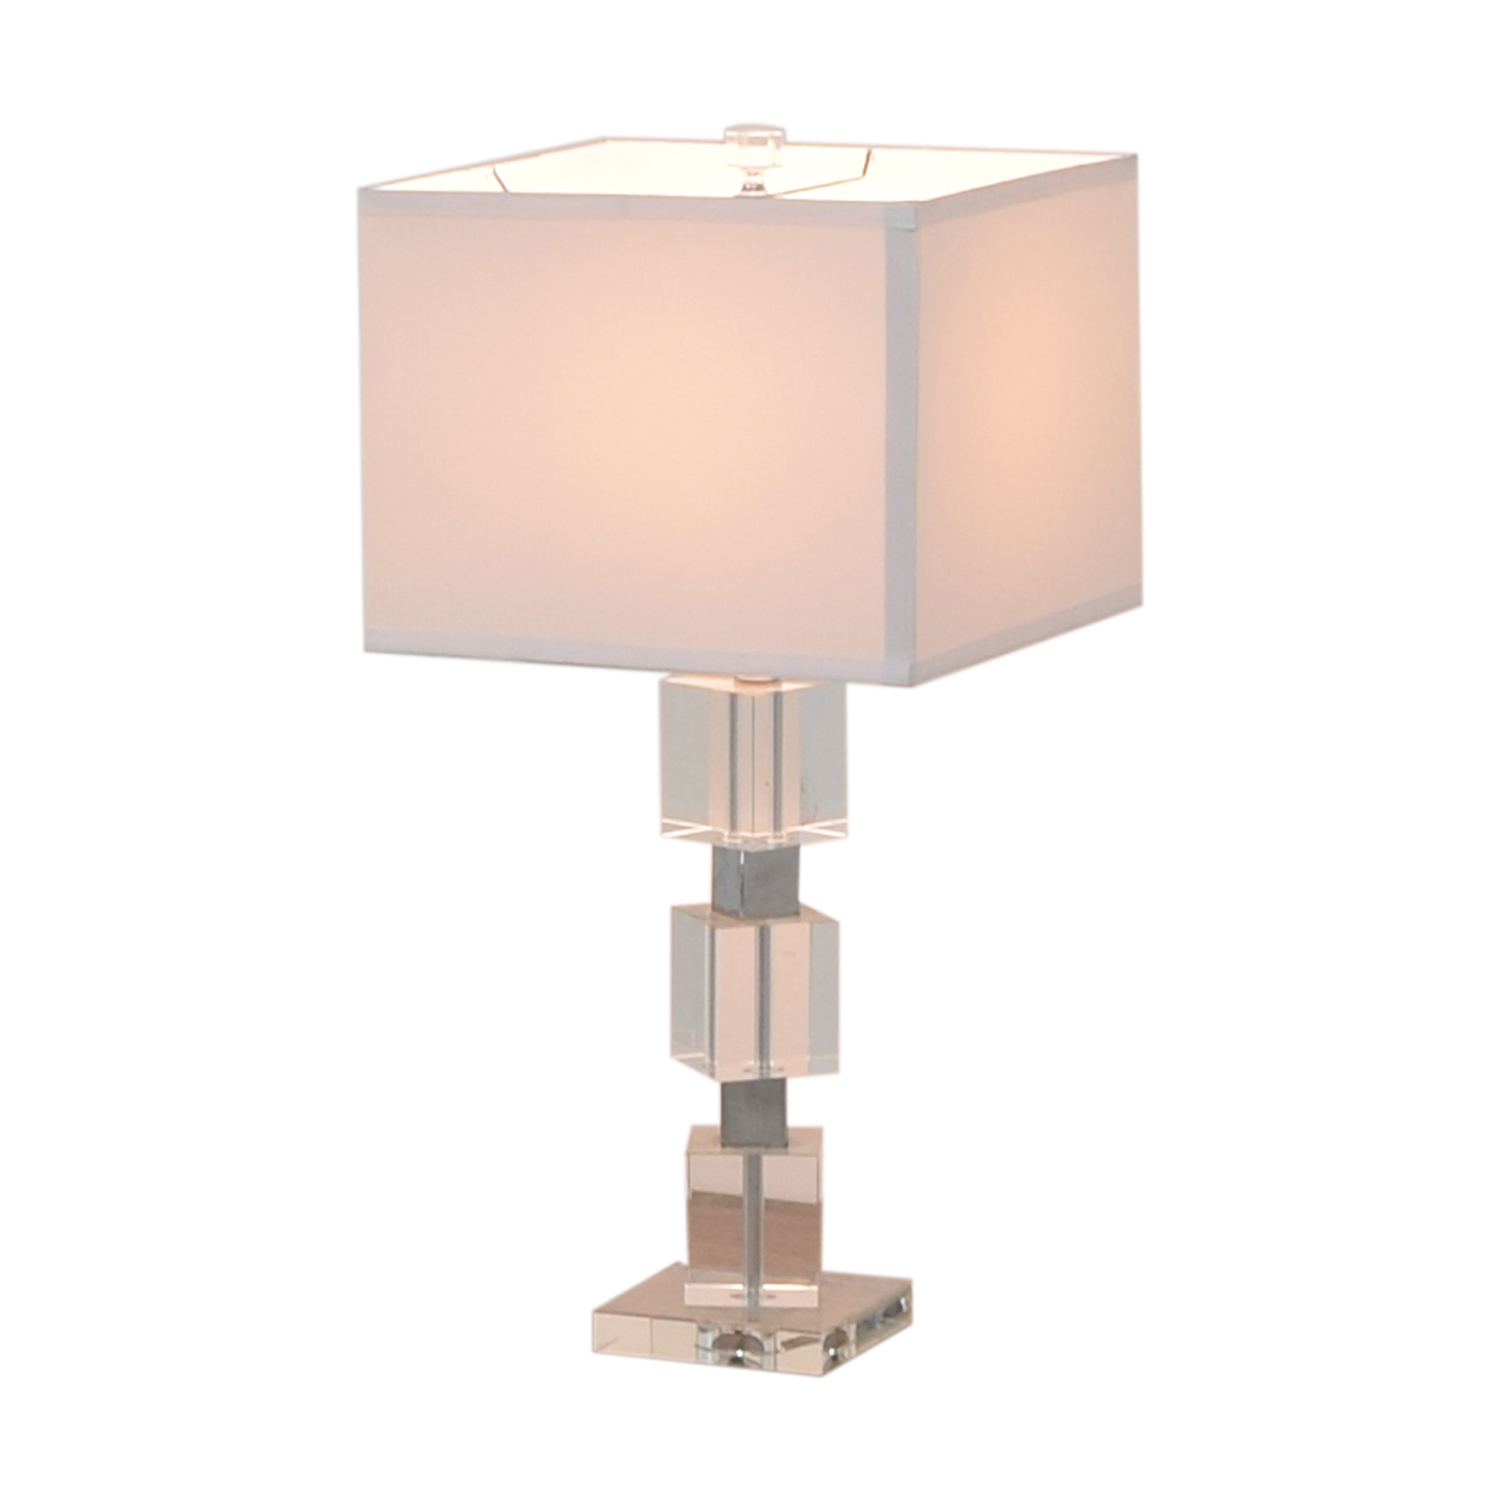 Z Gallerie Z Gallerie Margeaux Table Lamp on sale